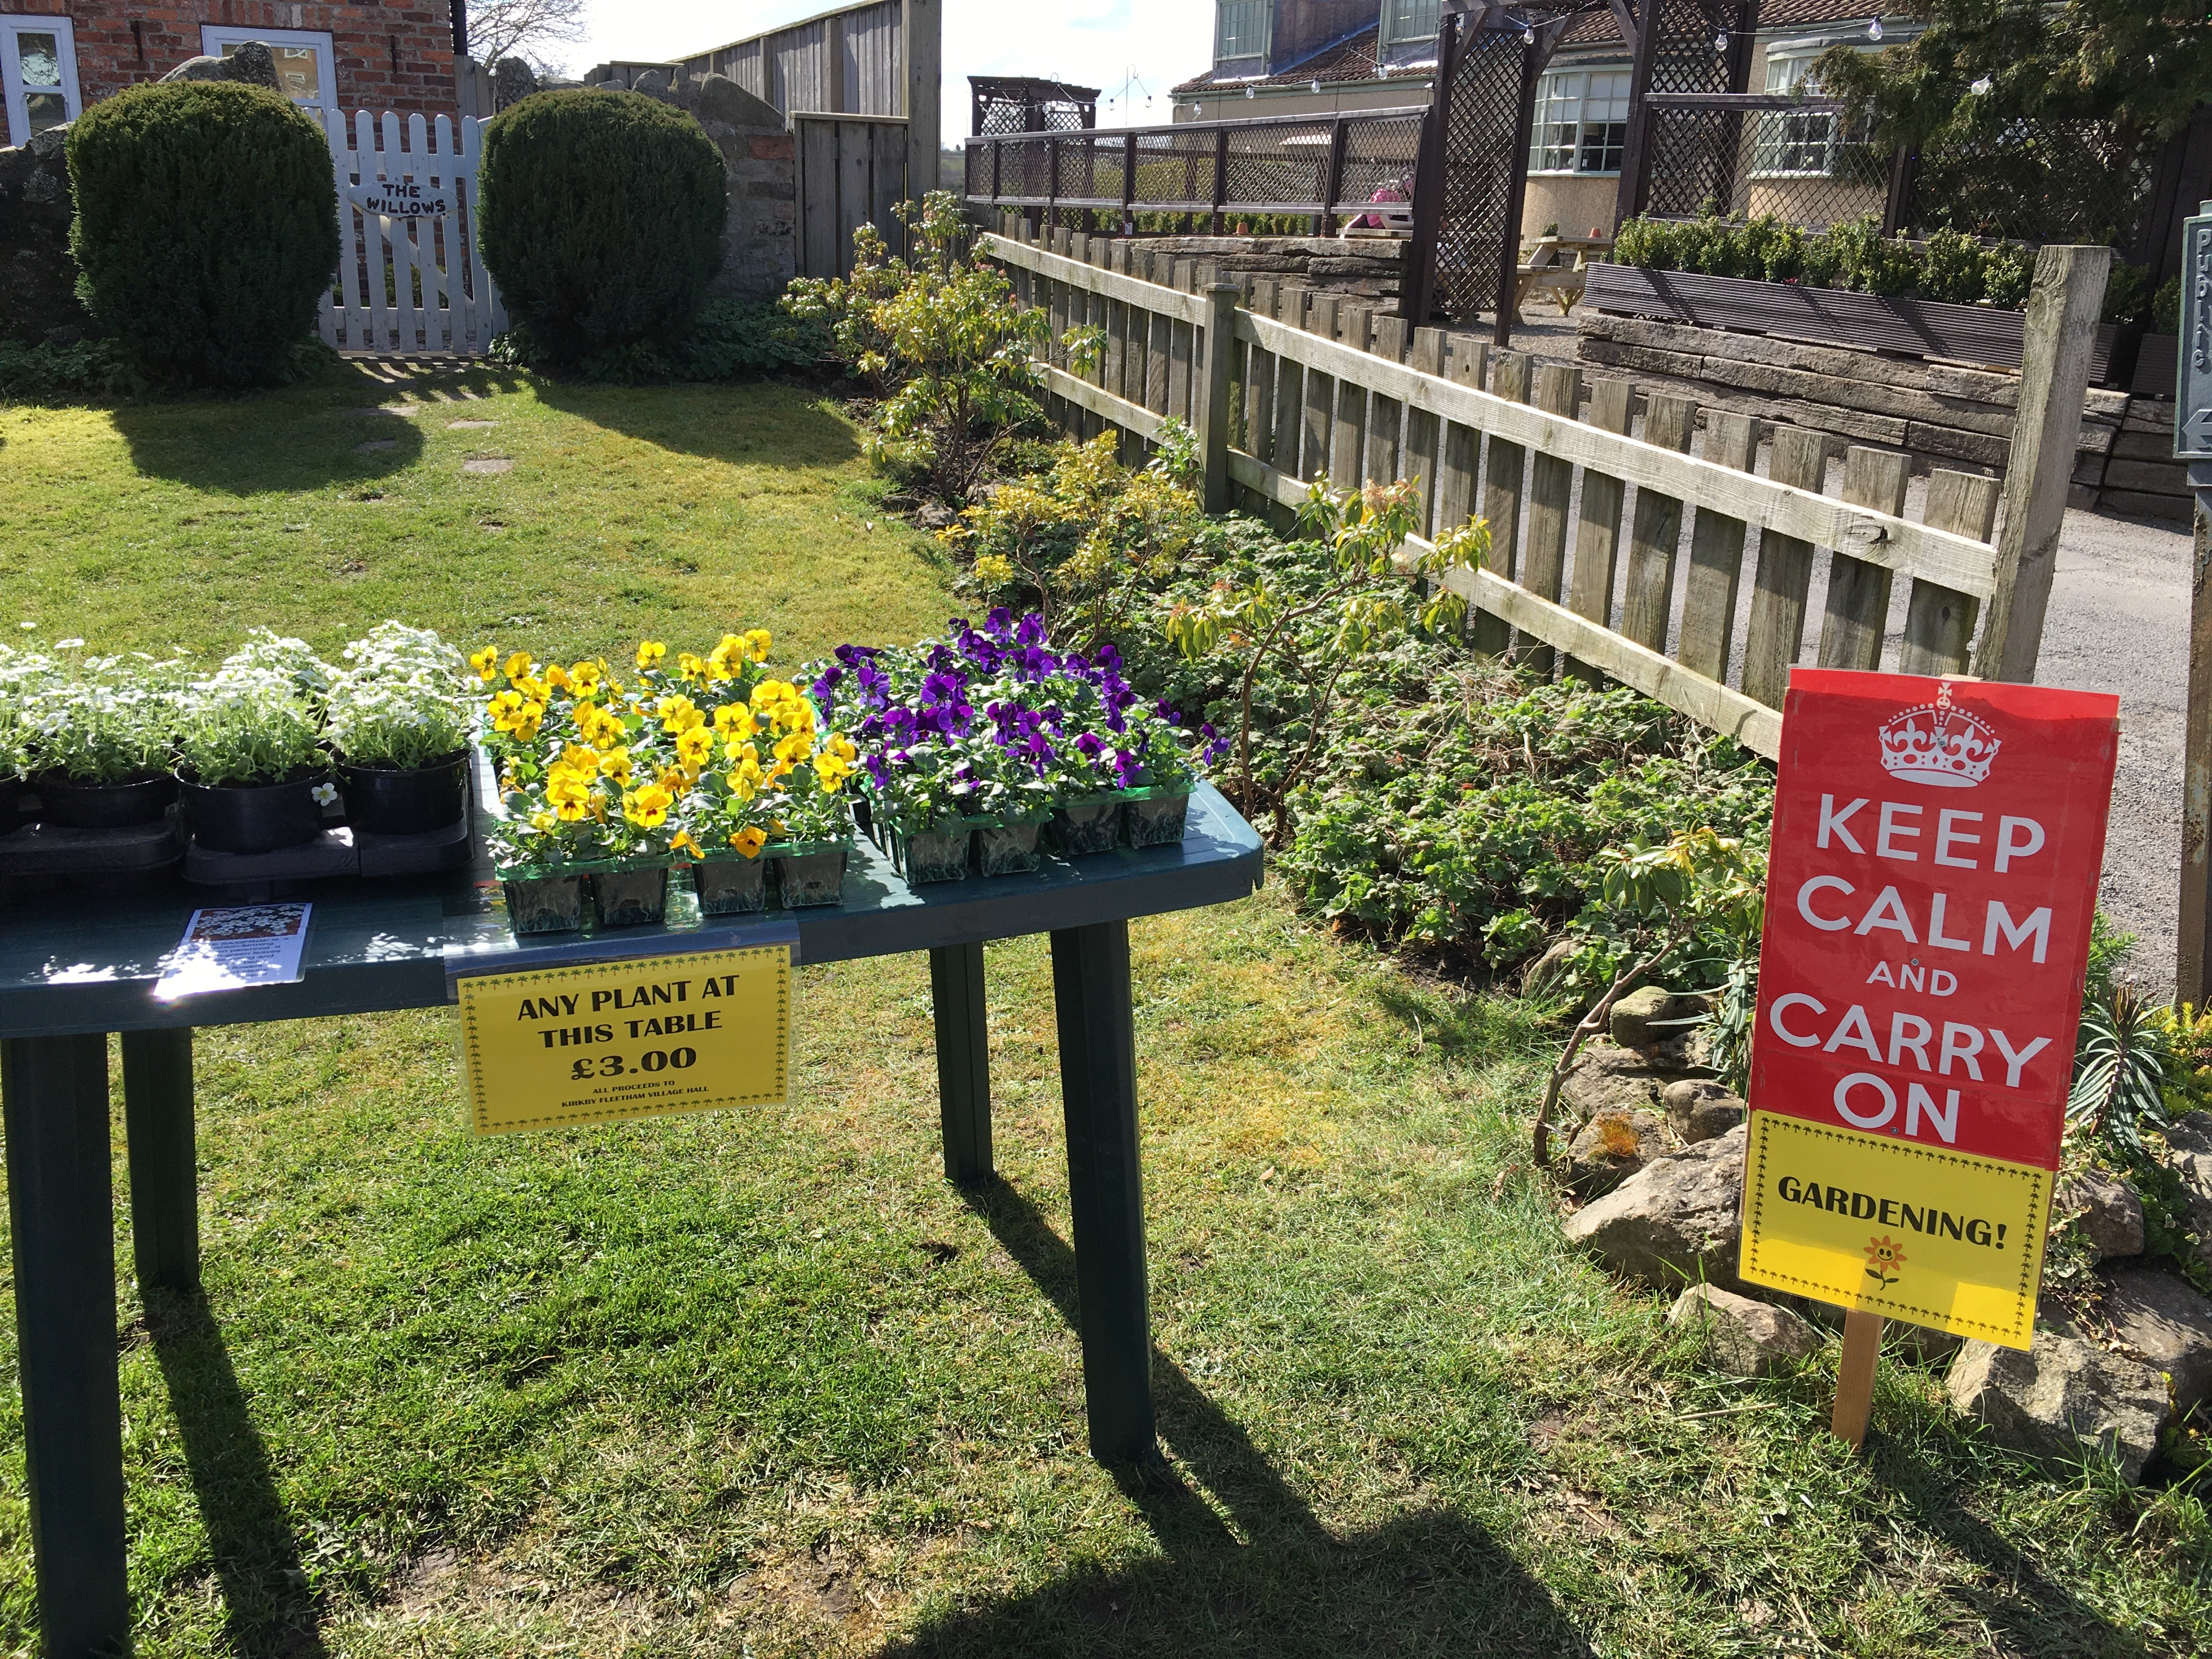 Keep calm and carry on GARDENING